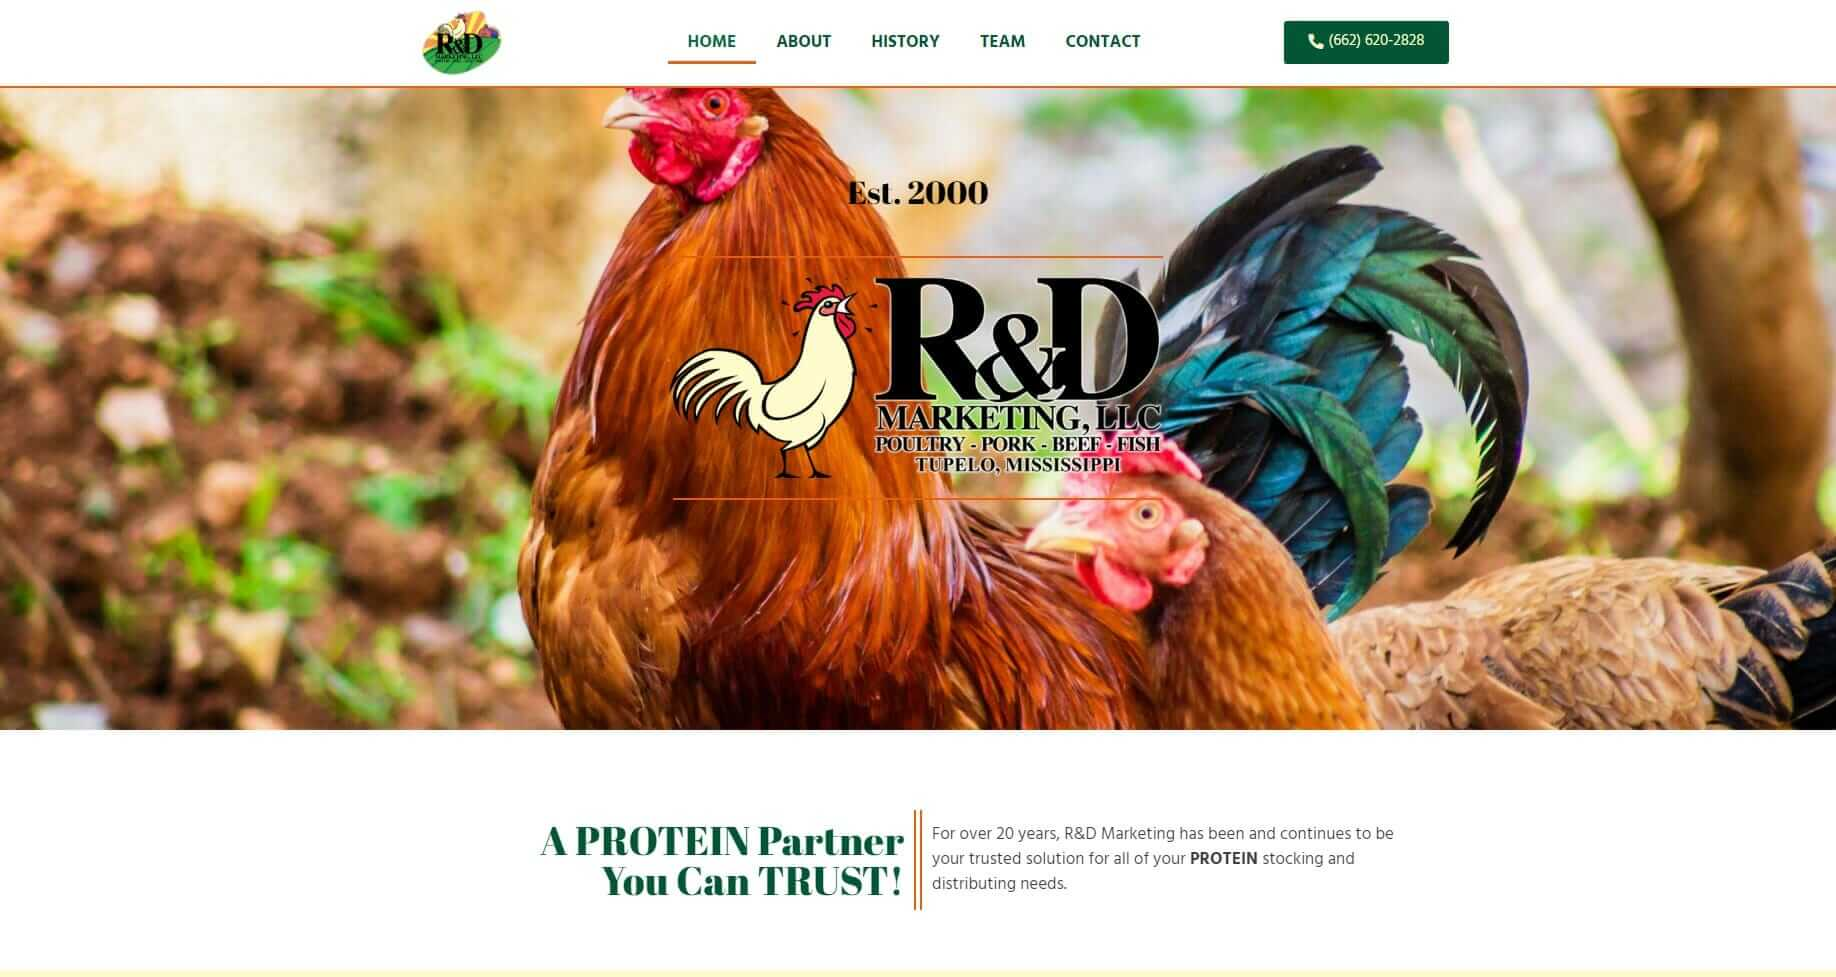 website design and marketing for food service business - R&D Marketing